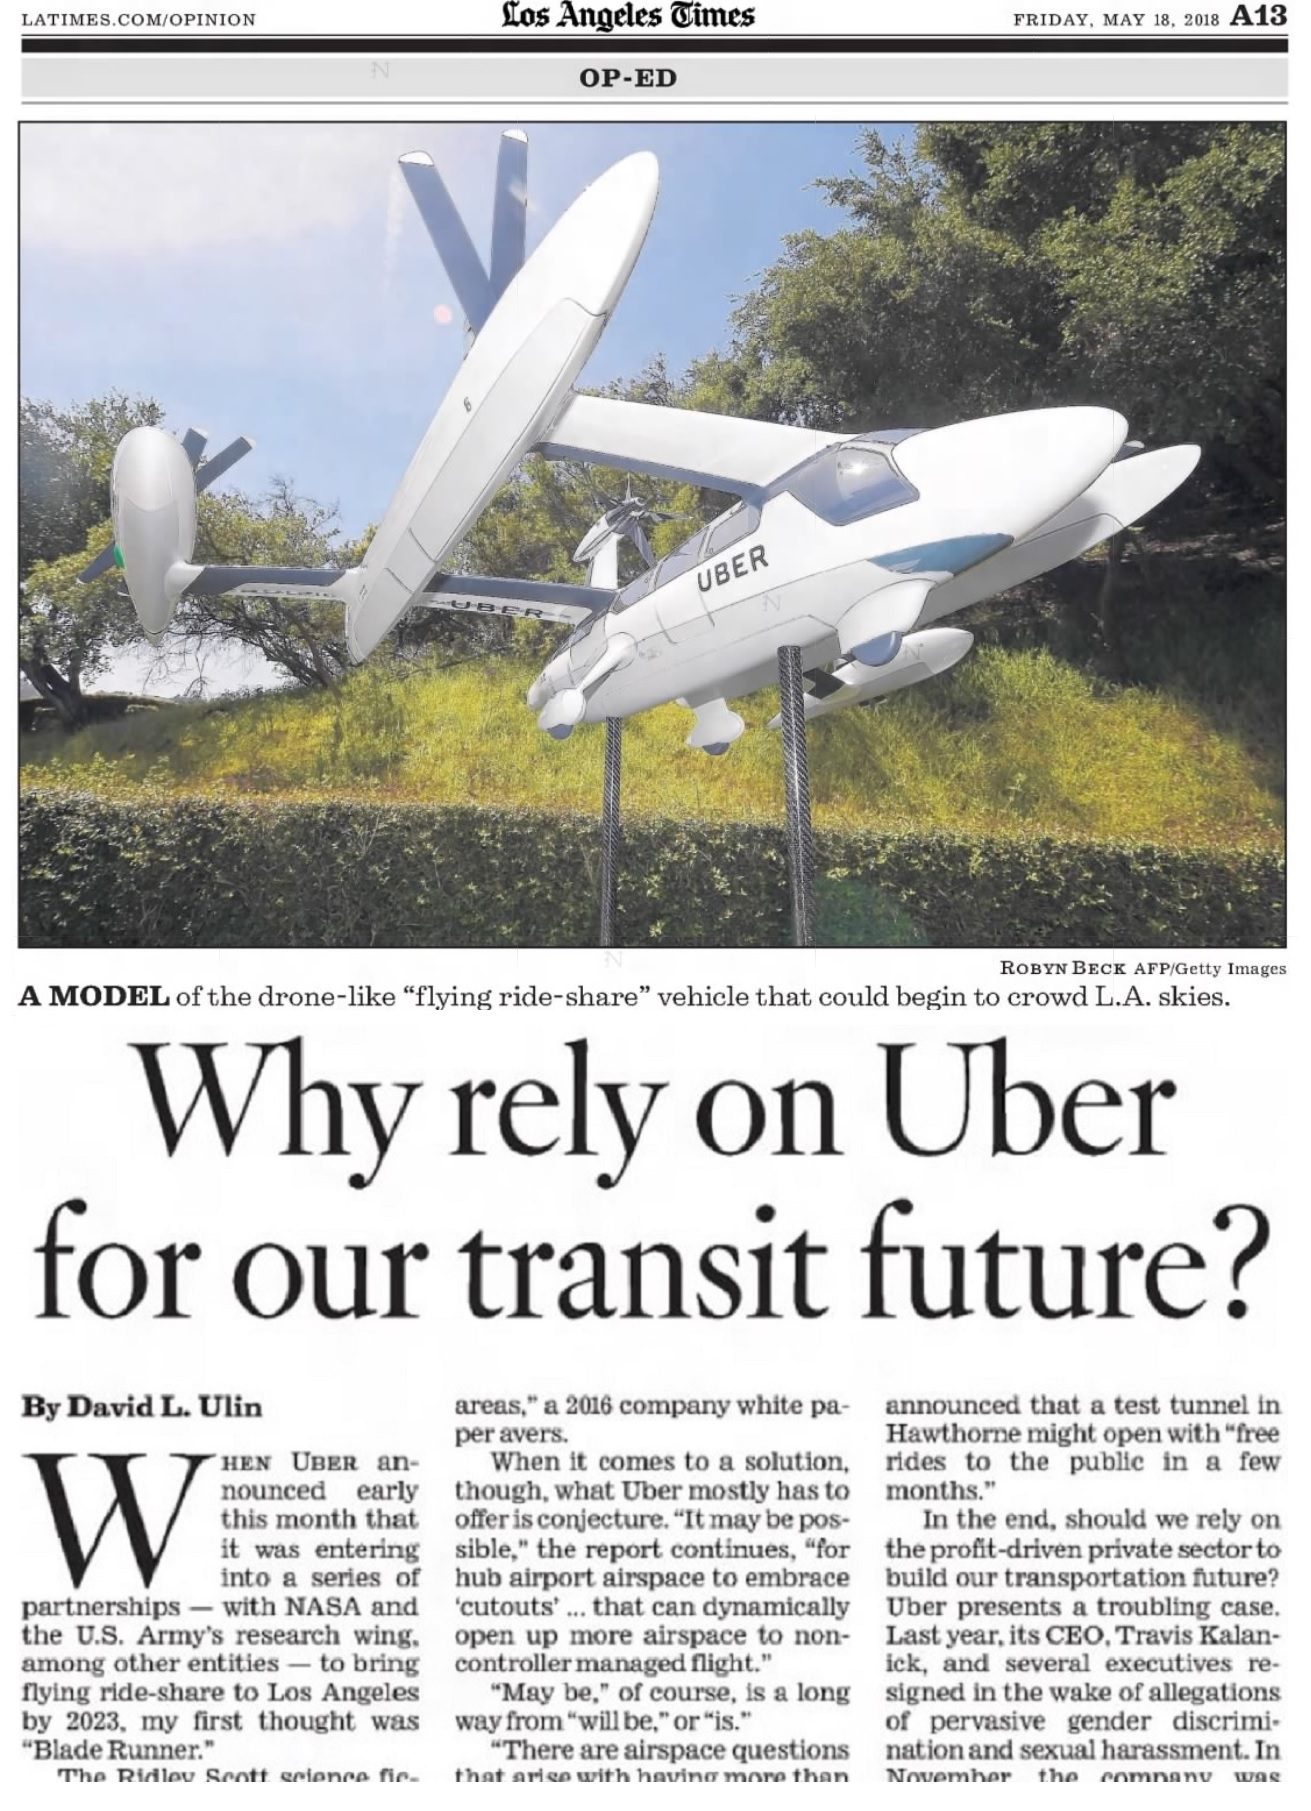 David Ulin's Op-ed piece in the Los Angeles Times entitled 'Why rely on Uber for our transit future'